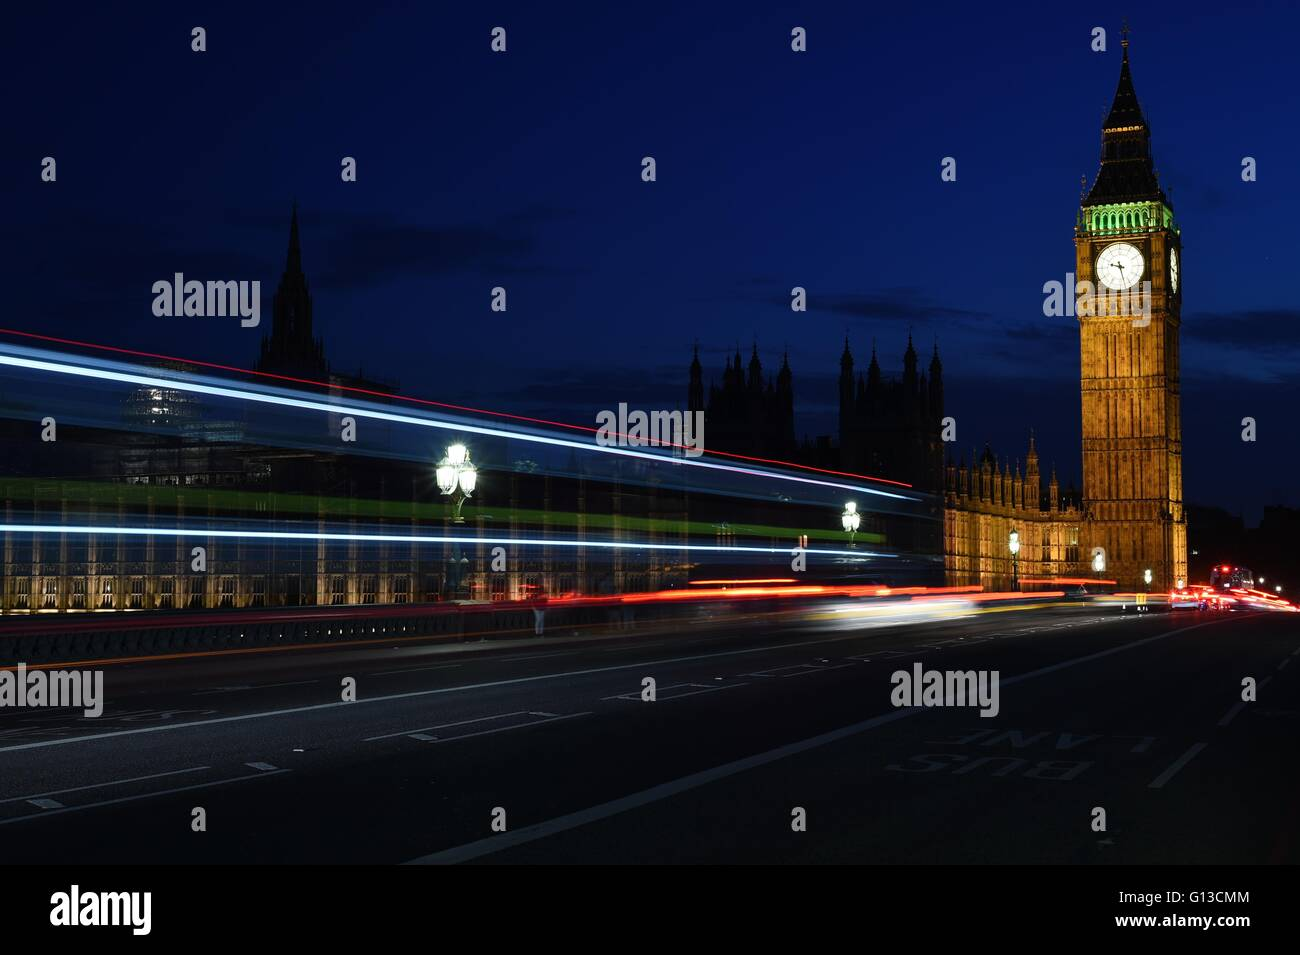 Night shot of Big Ben with light trails - Stock Image